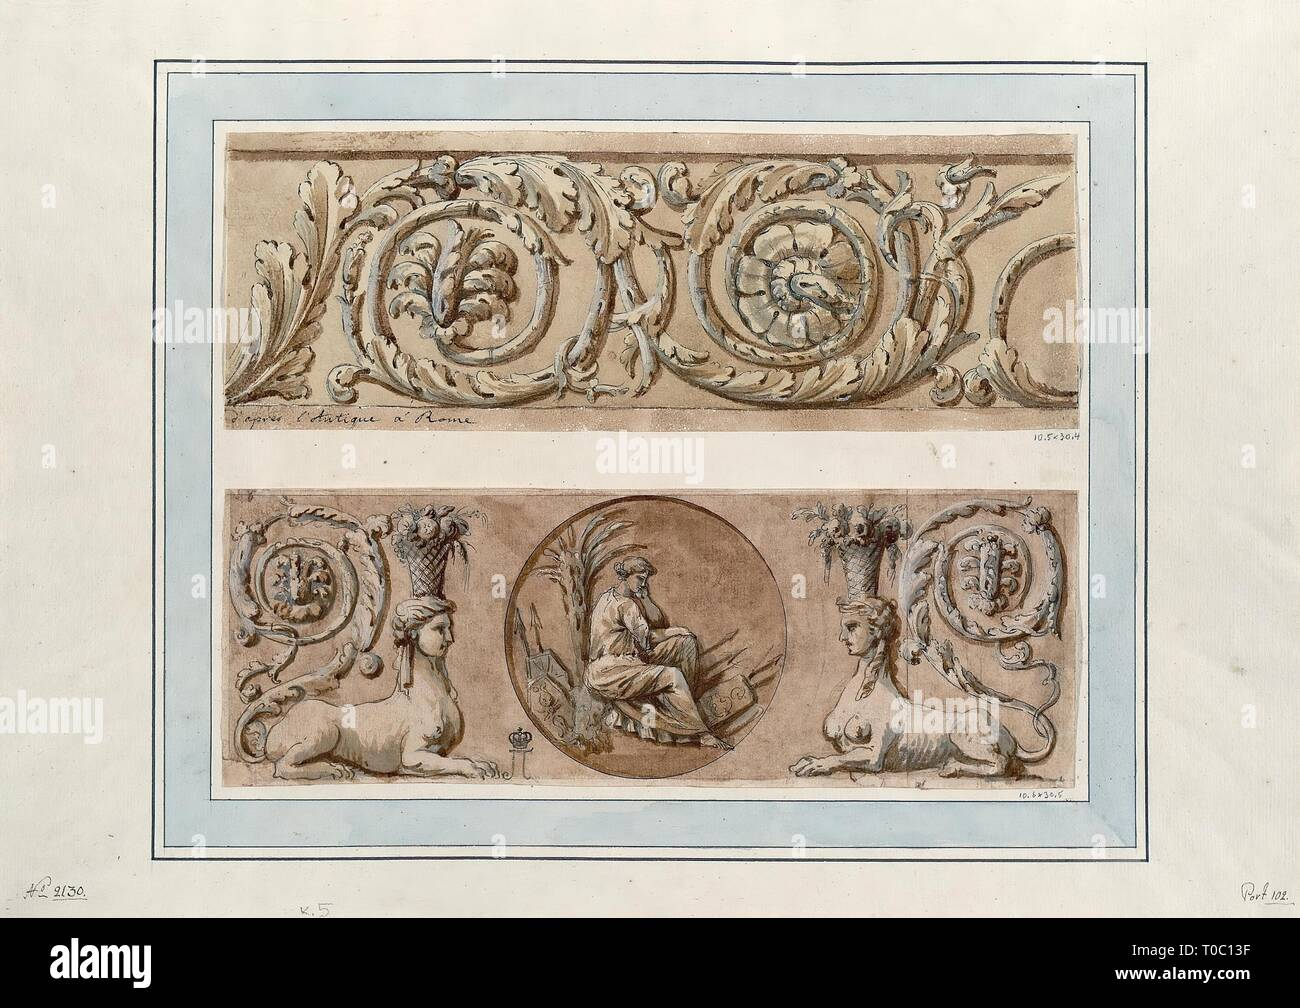 'Acanthus Whorl and Plafond Fragment'. France, 1760s. Dimensions: 10,5x30,4 cm; 10,6x30,5 cm. Museum: State Hermitage, St. Petersburg. Author: CHARLES-LOUIS CLERISSEAU. Stock Photo